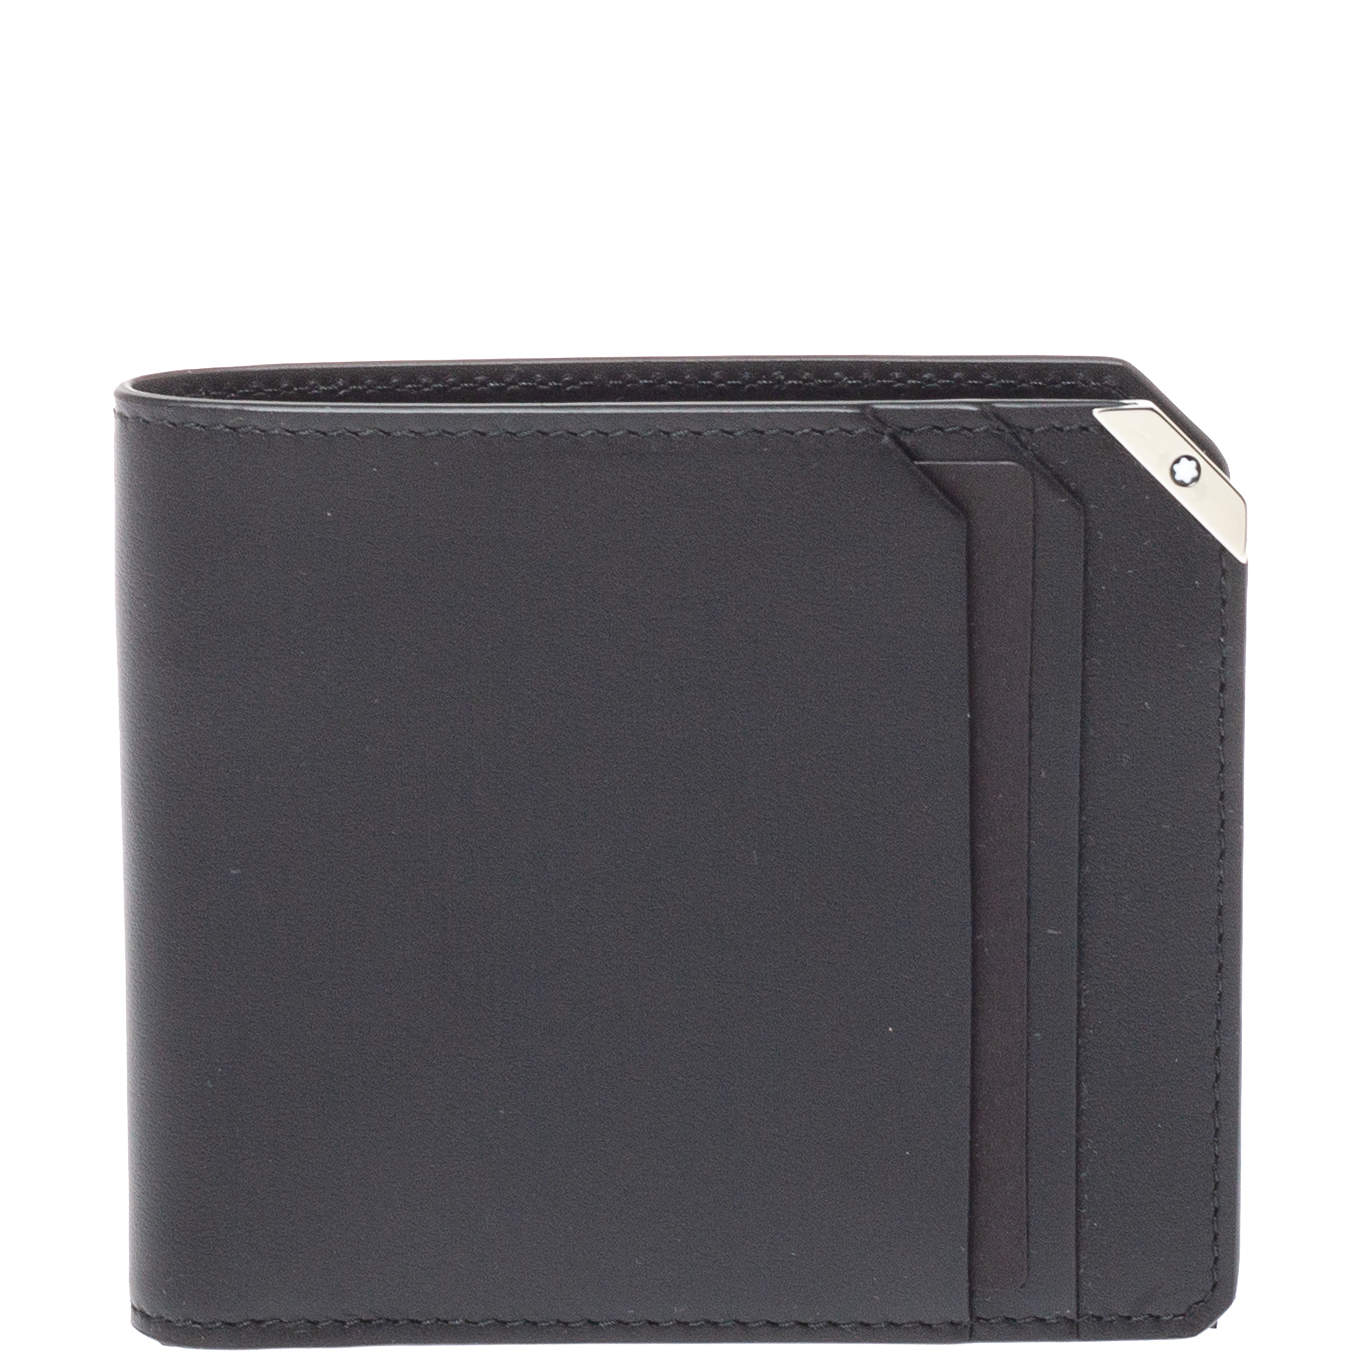 Montblanc Black Leather Urban Spirit 6cc Wallet